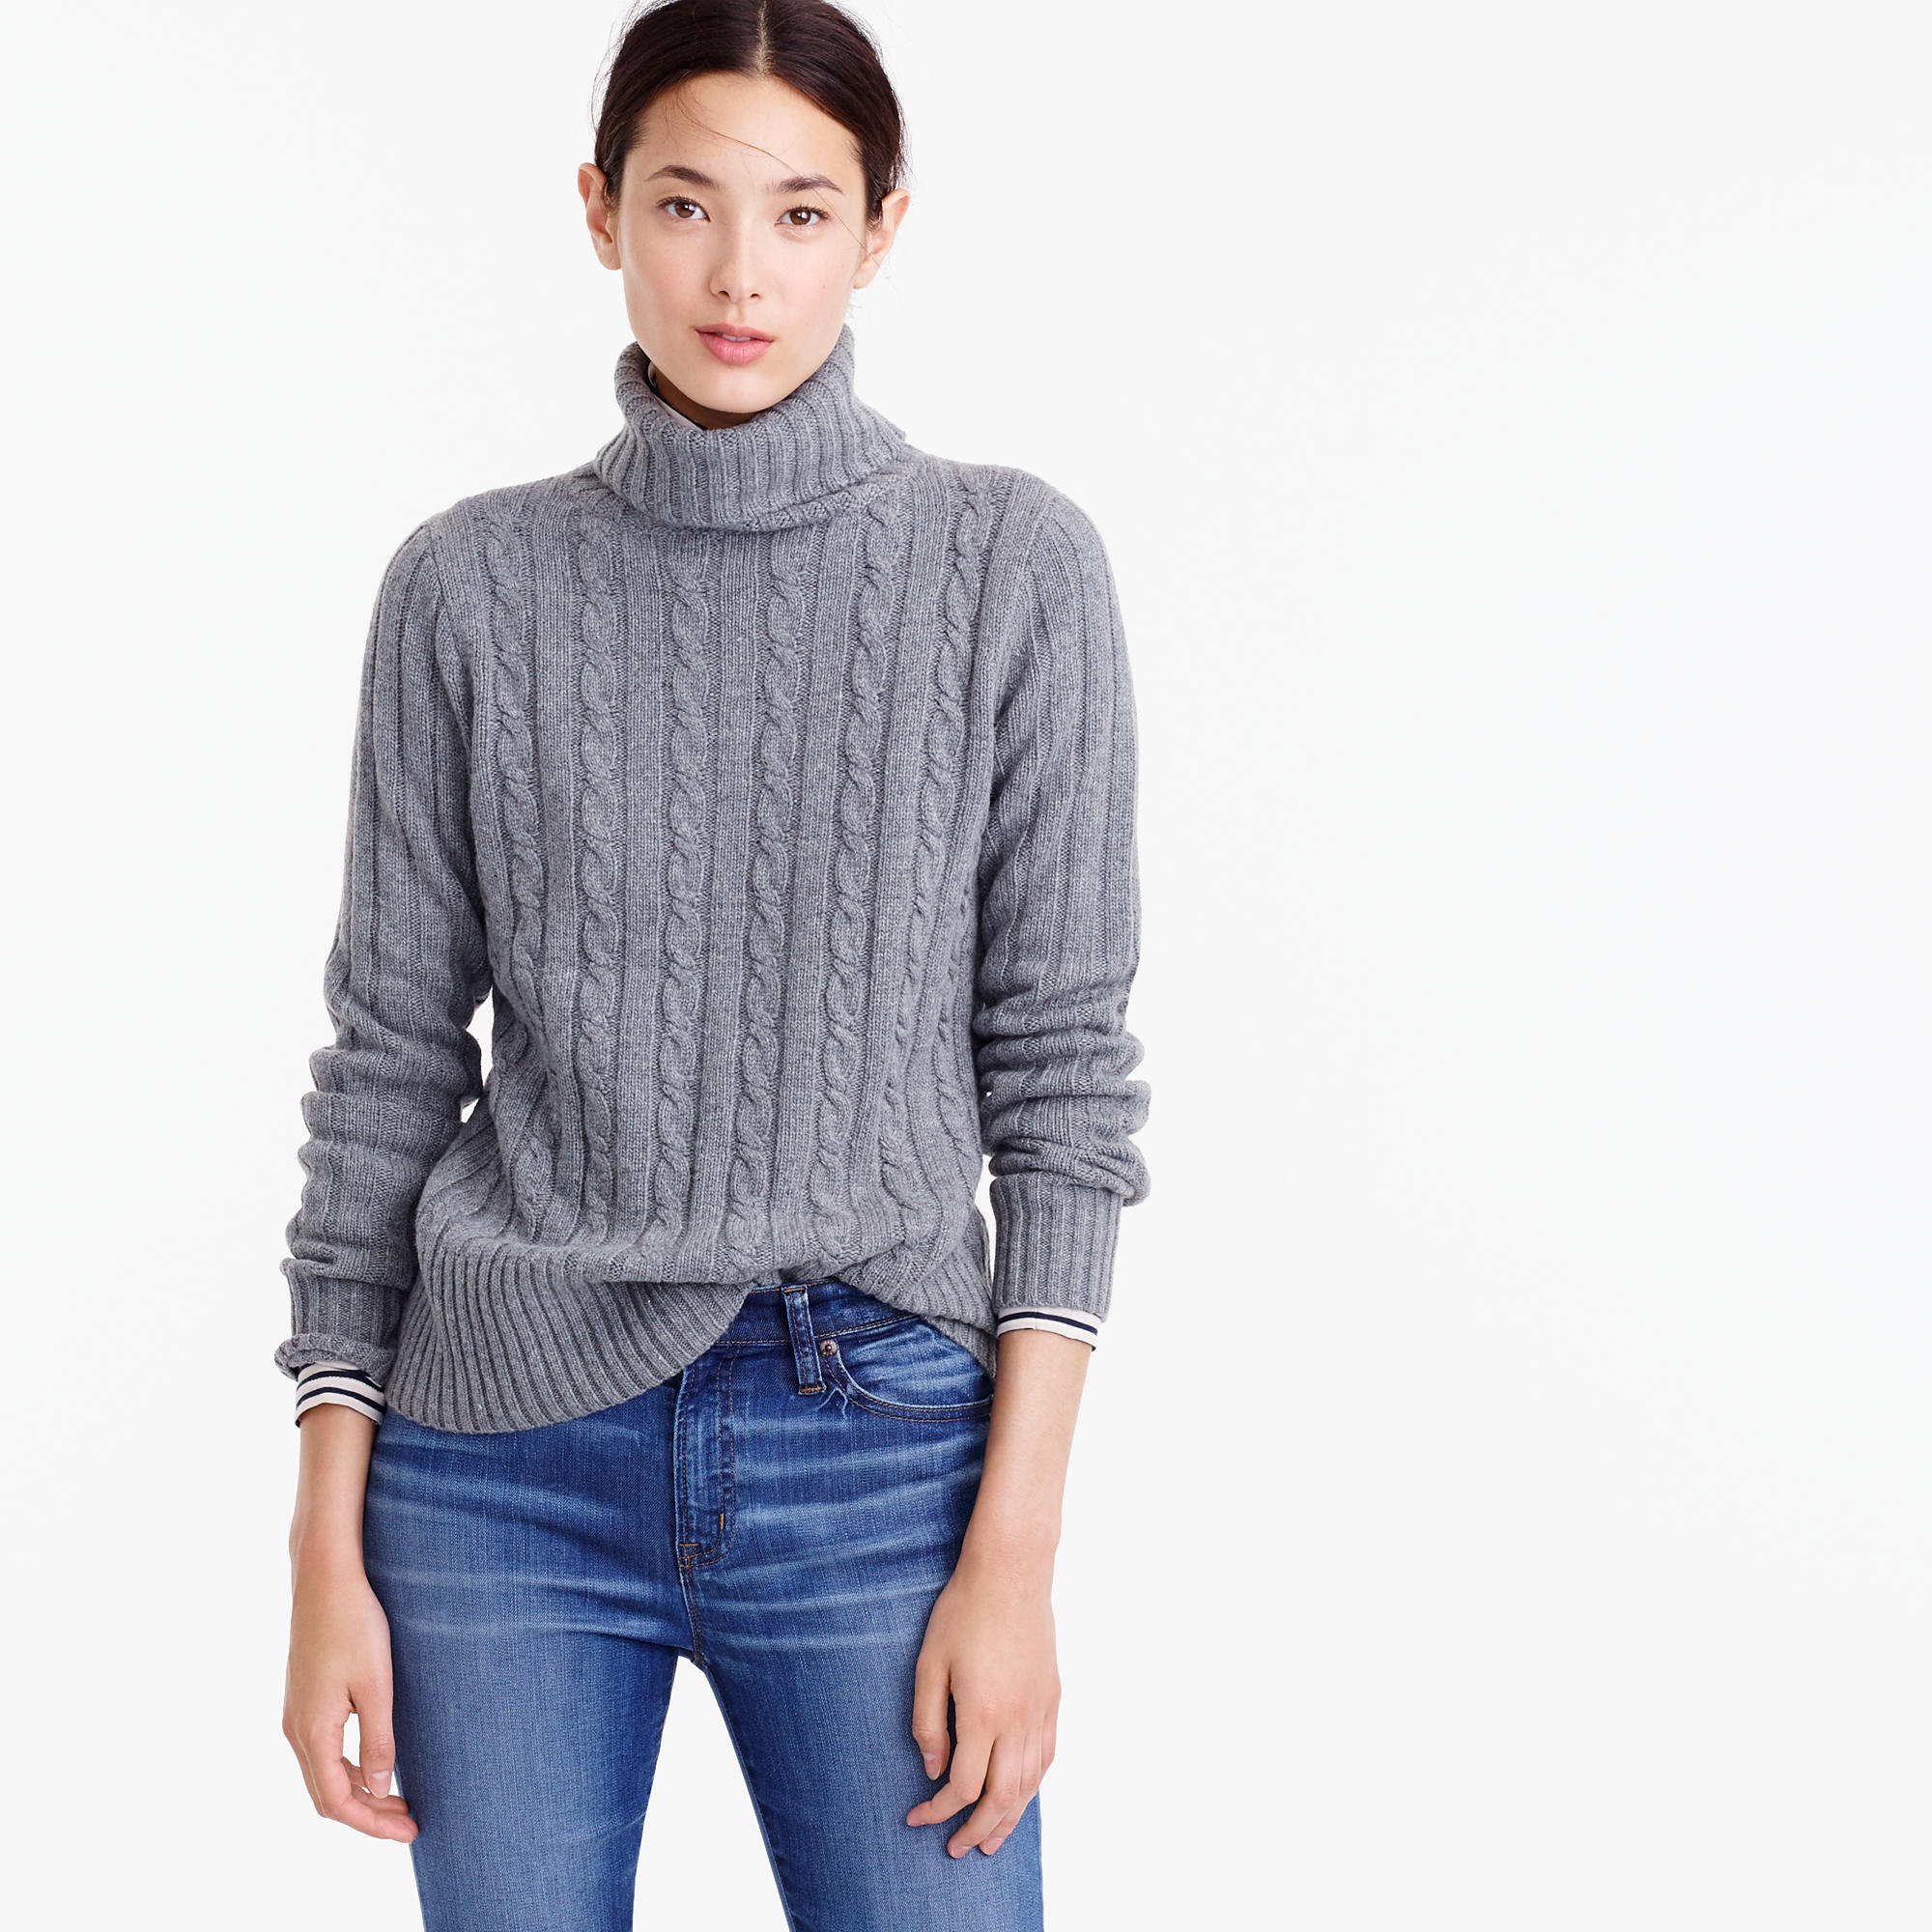 Cambridge Cable Chunky Turtleneck Sweater : Women's Sweaters | J.Crew